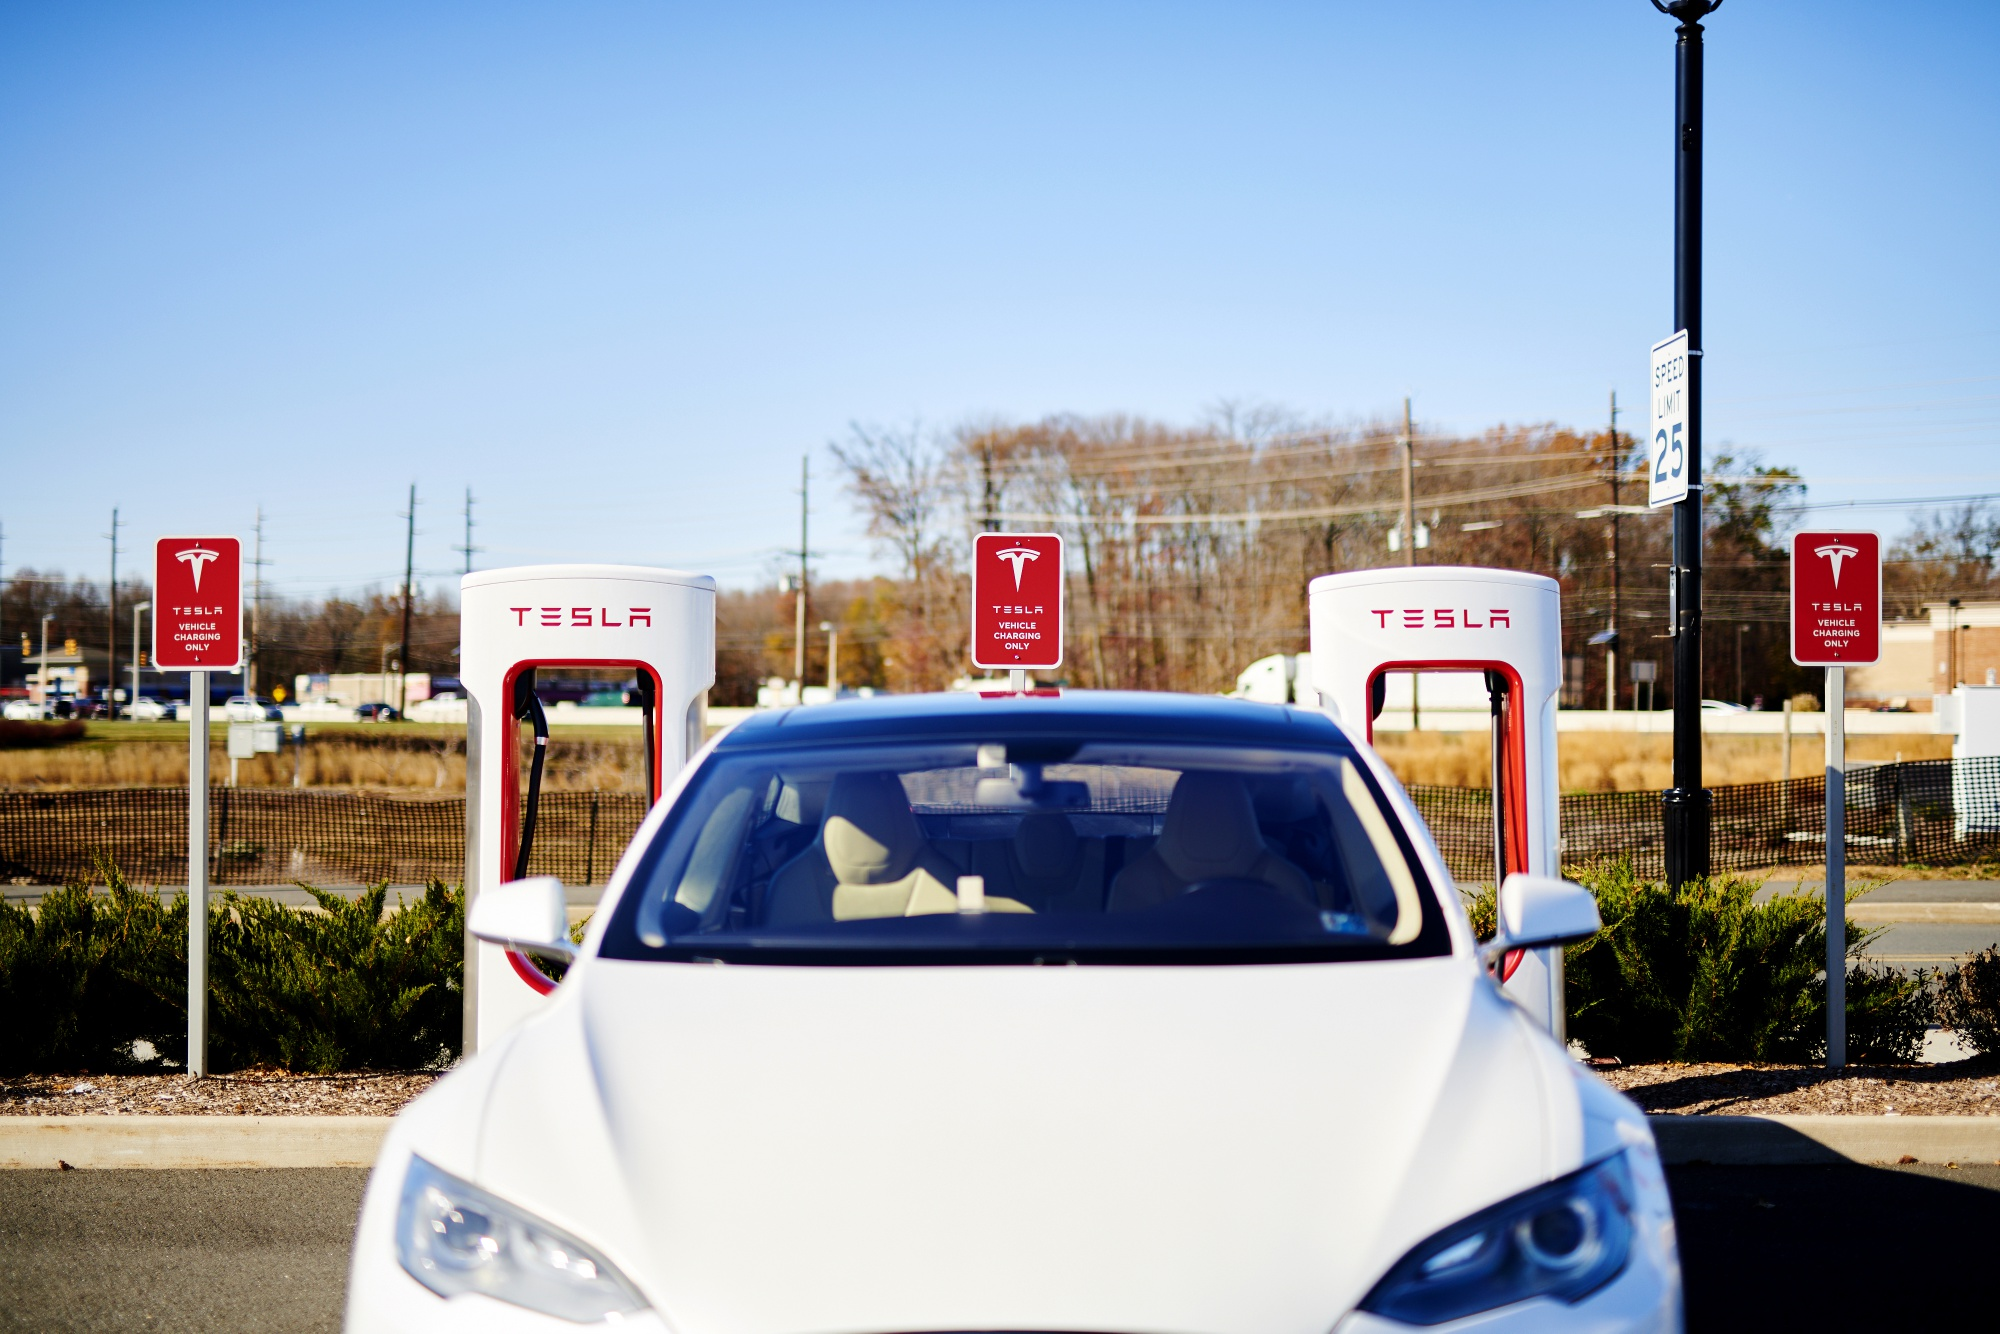 A Tesla Inc. electric vehicle sits parked in front of a charging station.